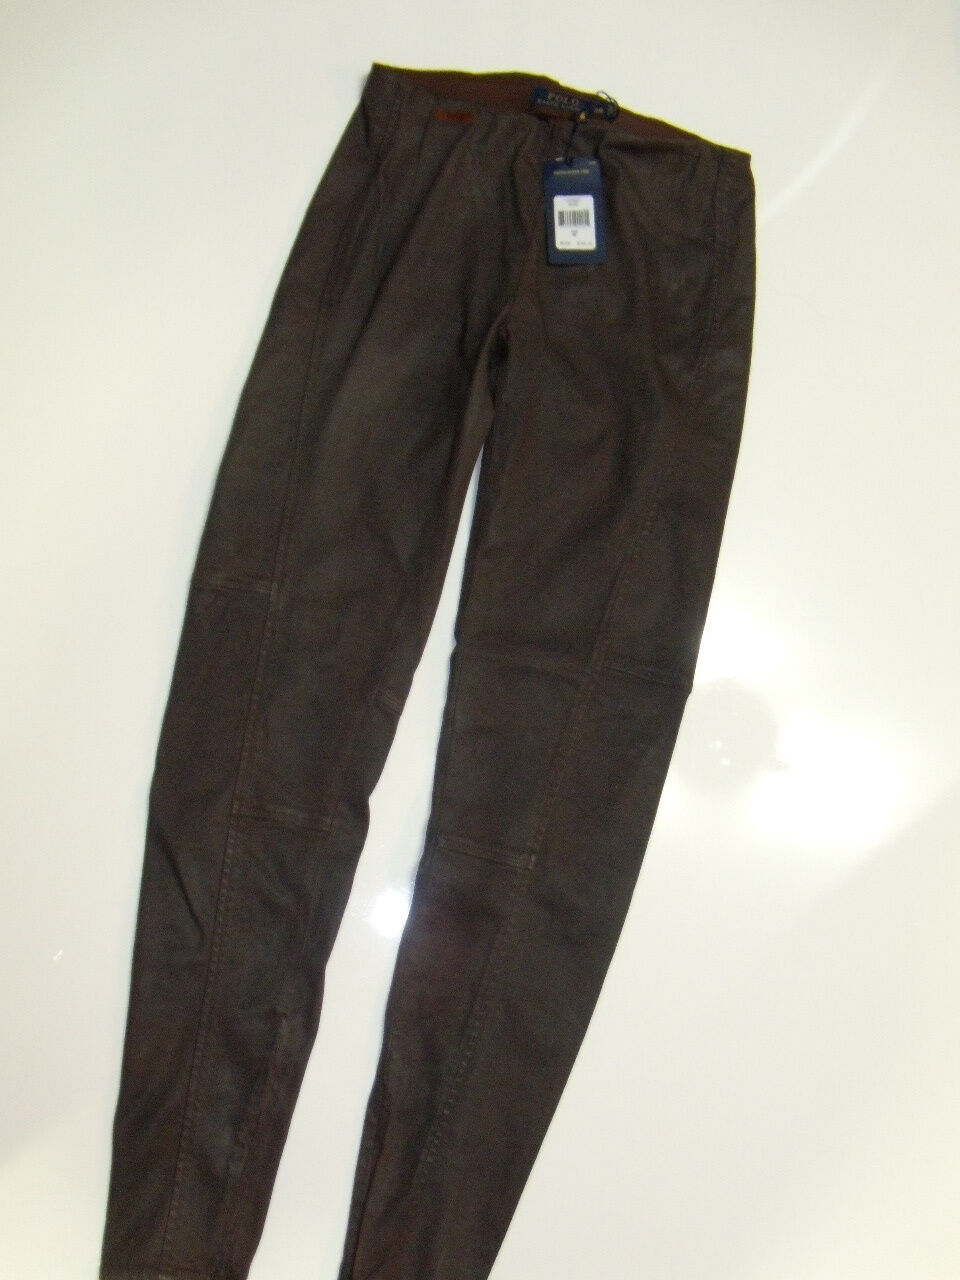 NWT  Womens Ralph Lauren Coated Faux Leather Distressed Leggings Pants 28